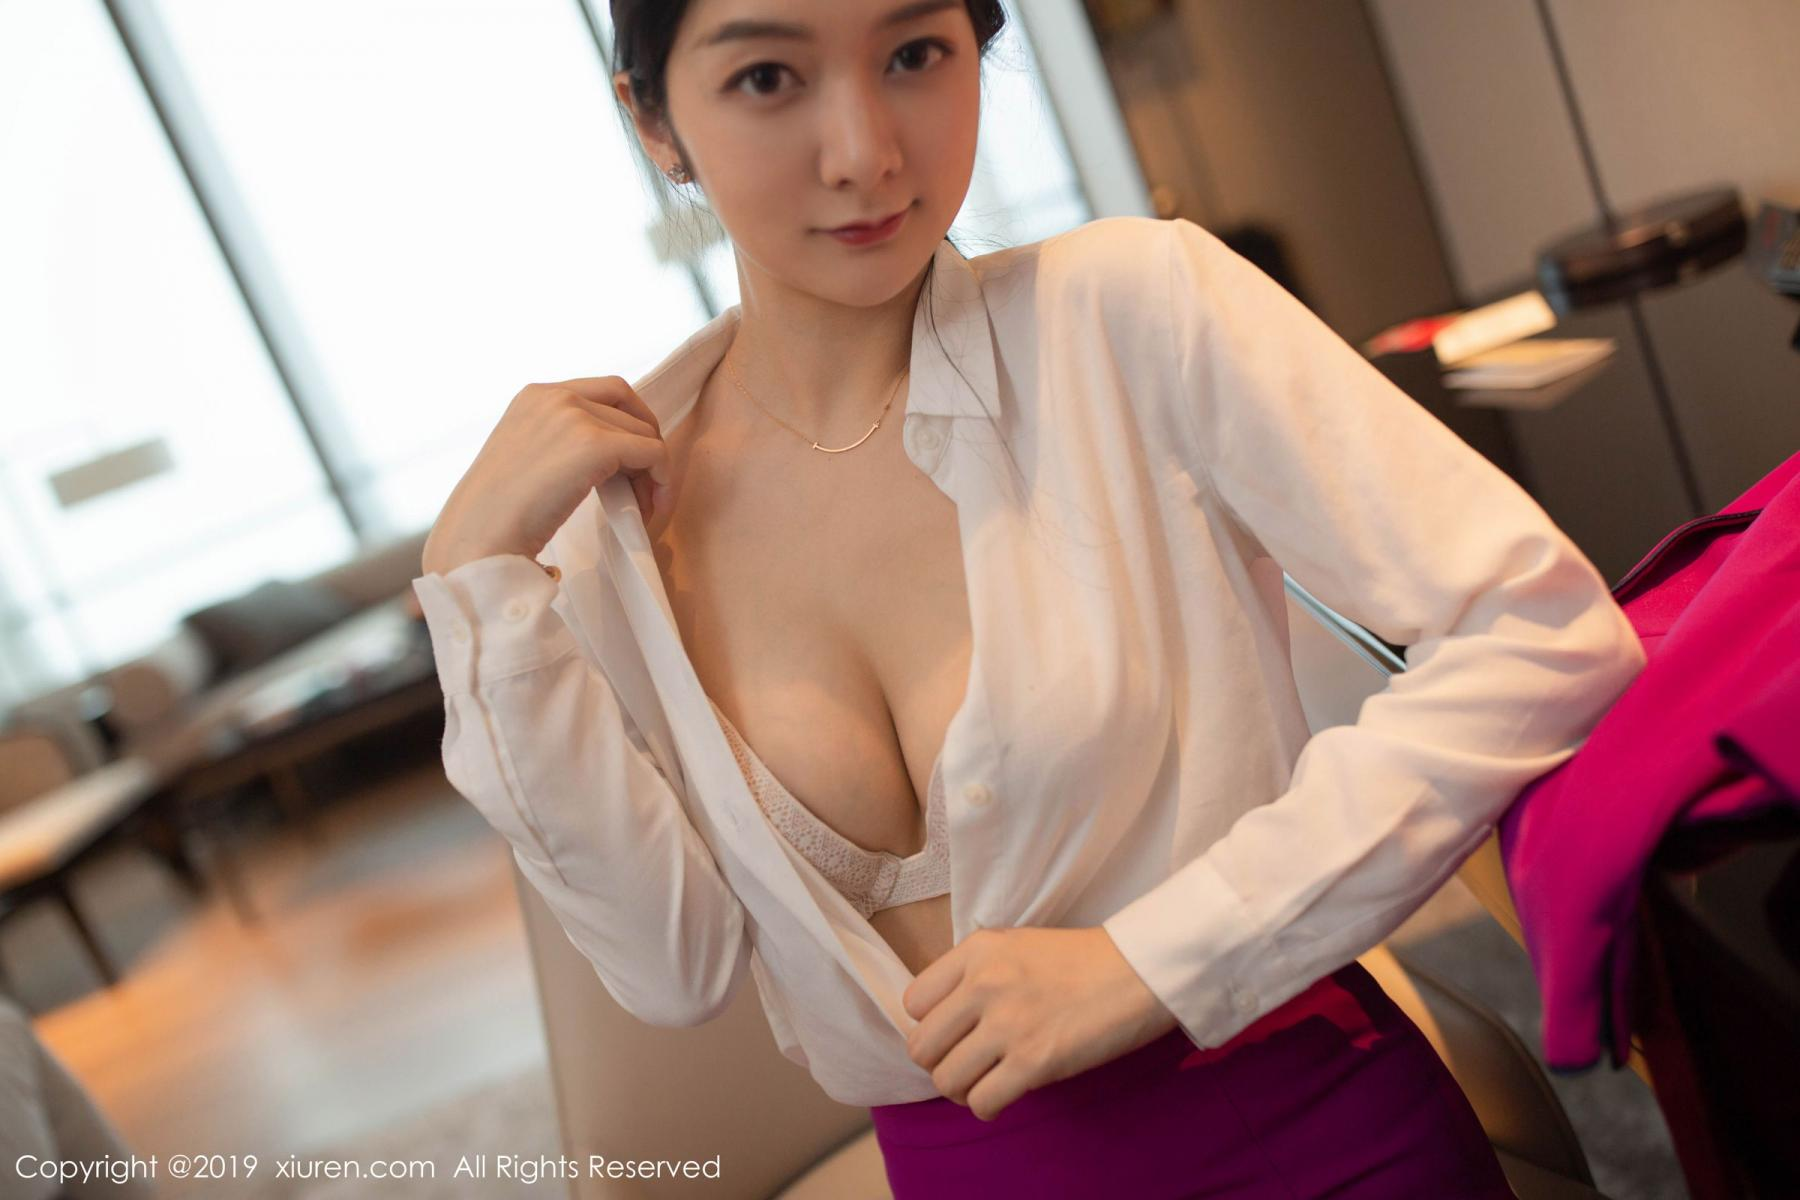 [XiaoYu] Vol.1799 Xiao Re Ba 33P, Di Yi, Stewardess, Underwear, XiaoYu